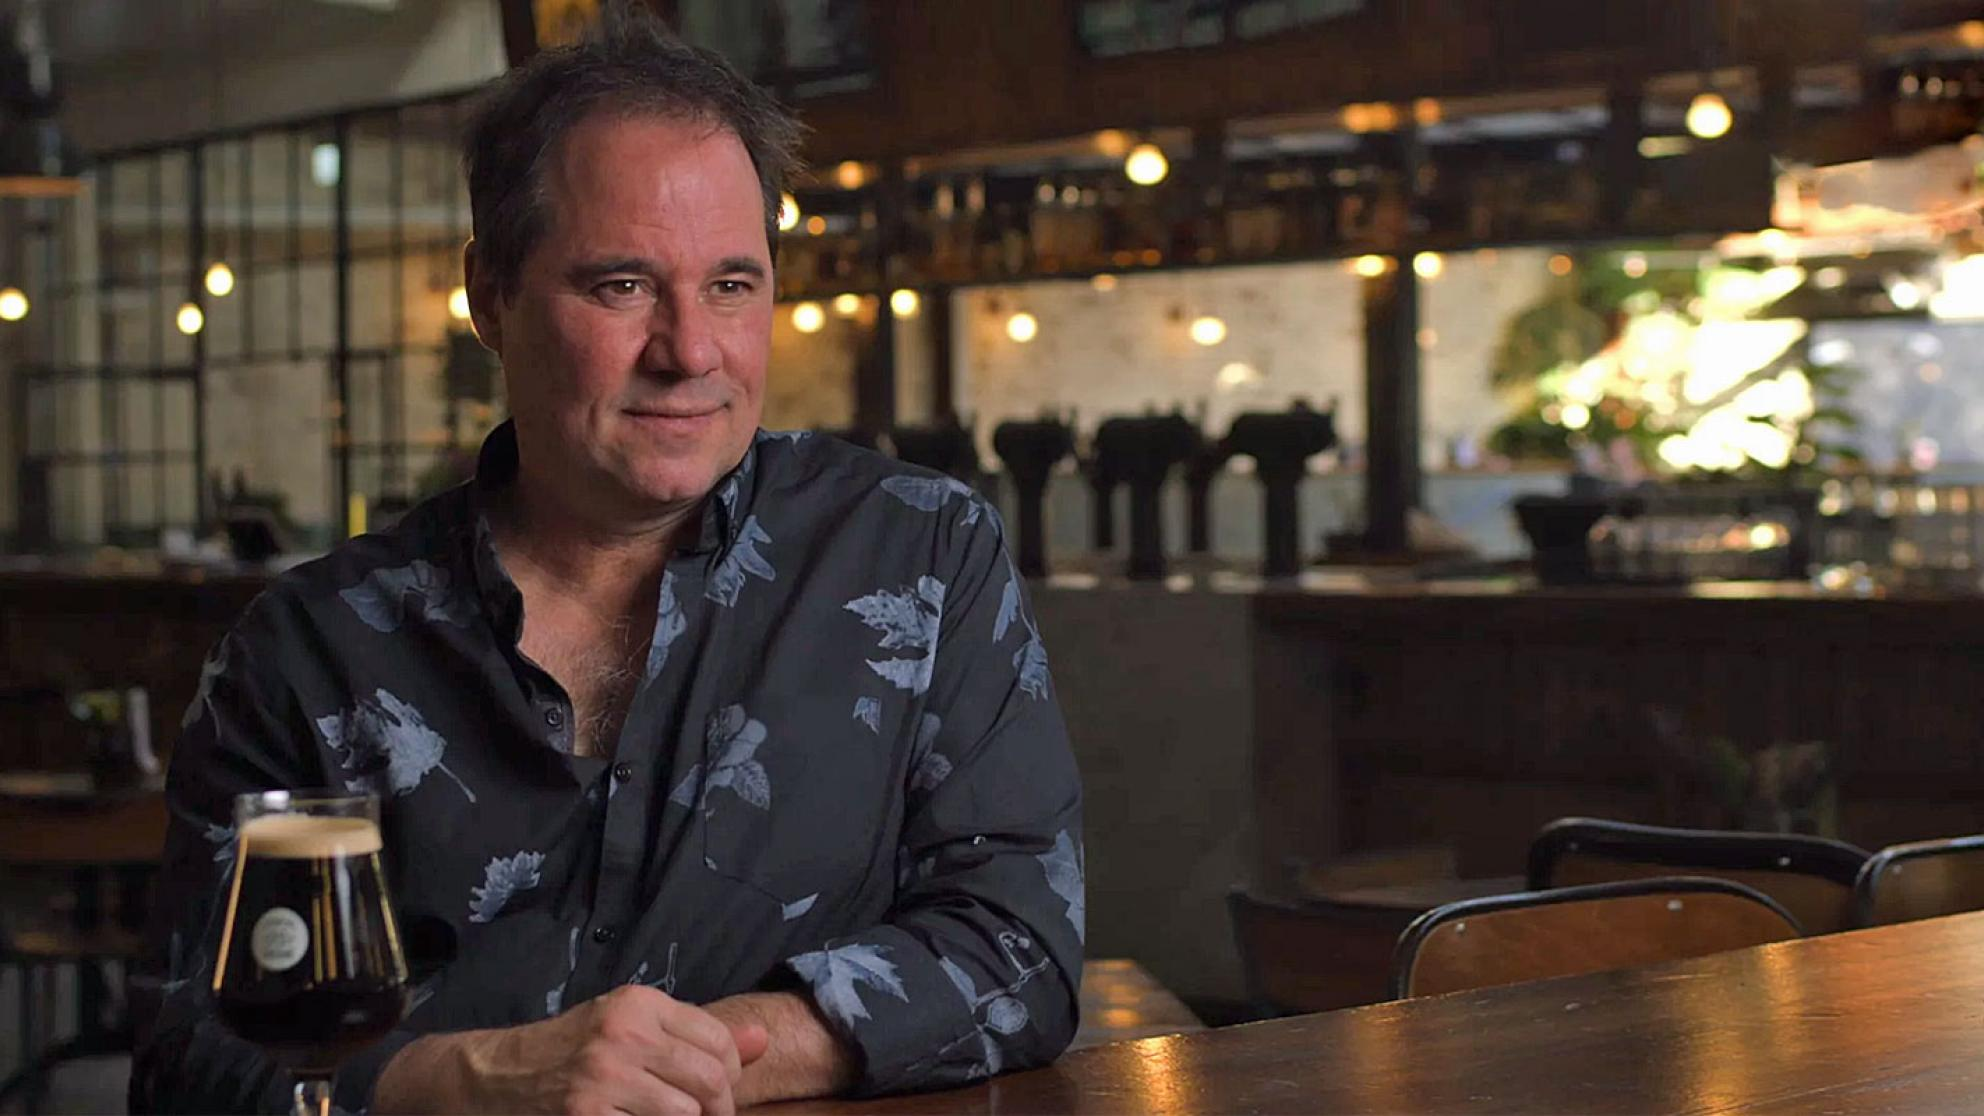 Waist-up shot of actor Paul Mercurio sitting at a restaurant table with a bar in the background.